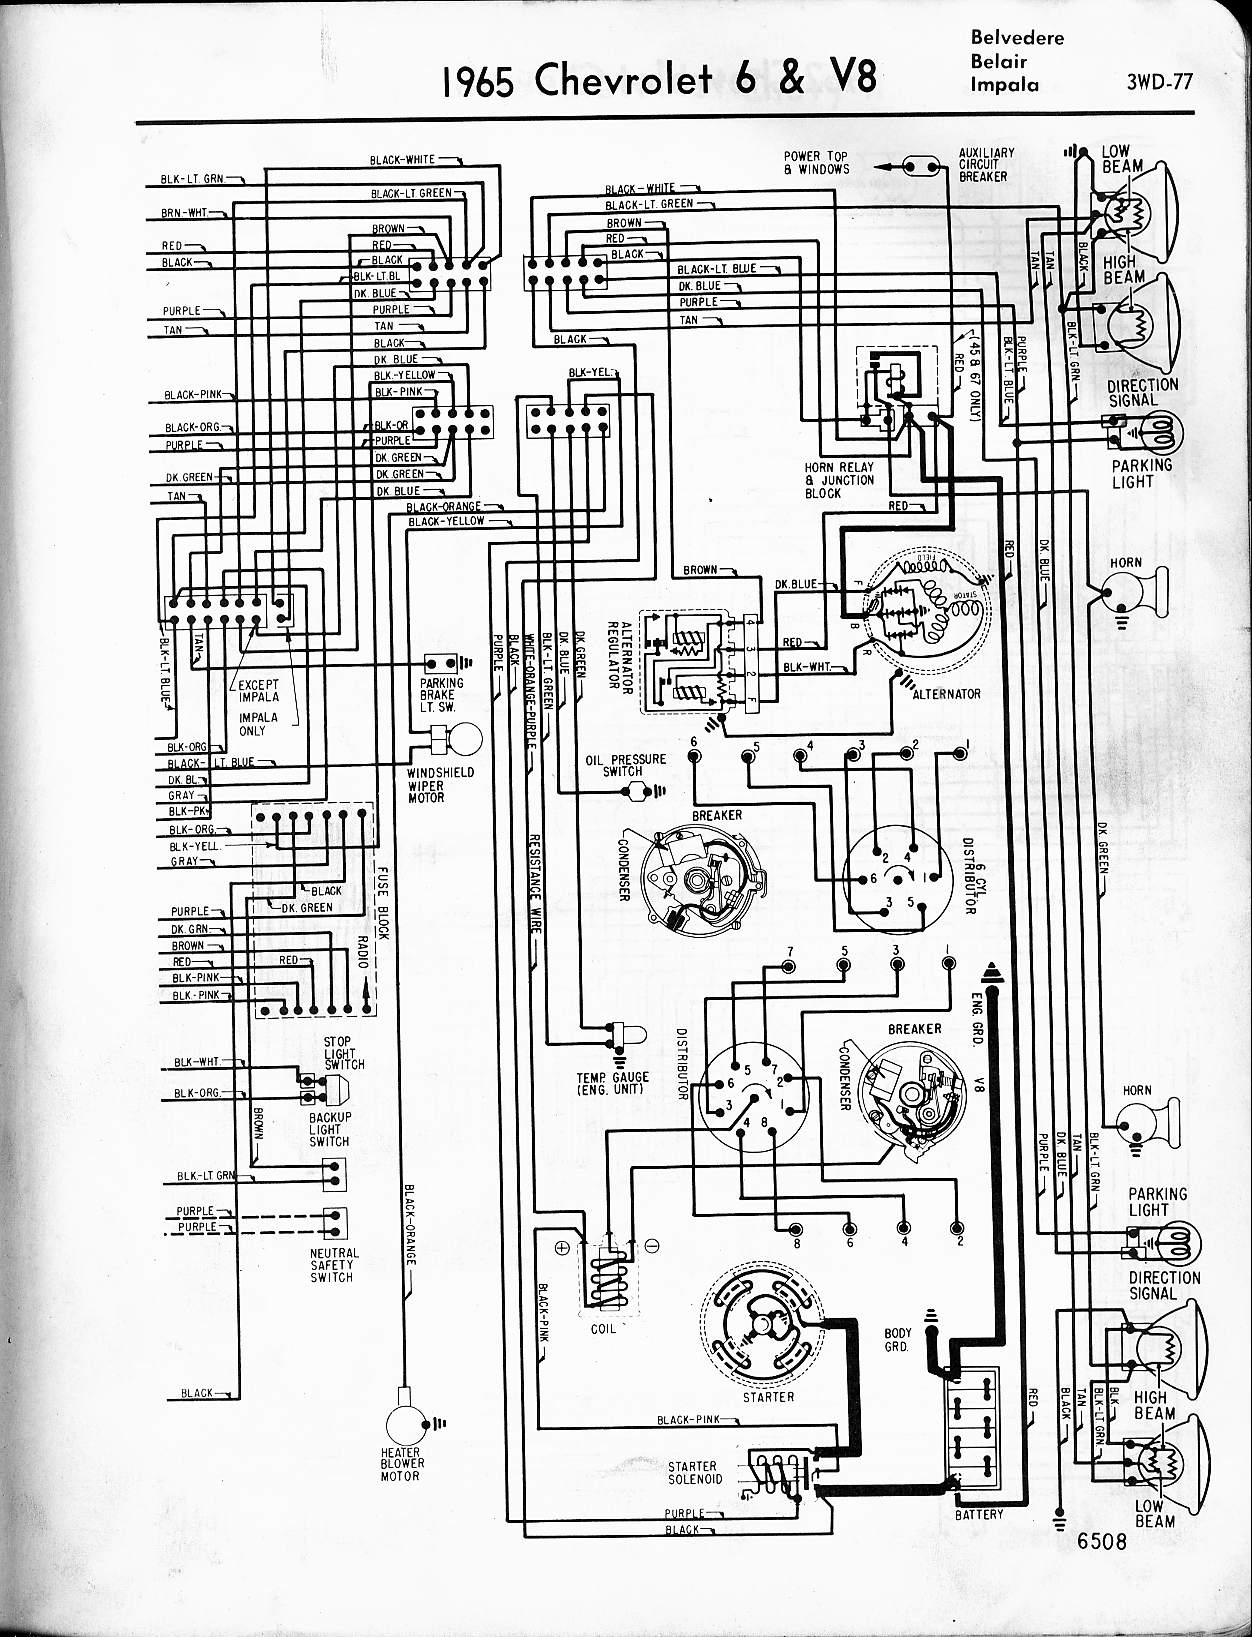 chevy diagrams rh wiring wizard com 1965 El Camino Wiring-Diagram 1964 Impala Tail Light Wiring Diagram